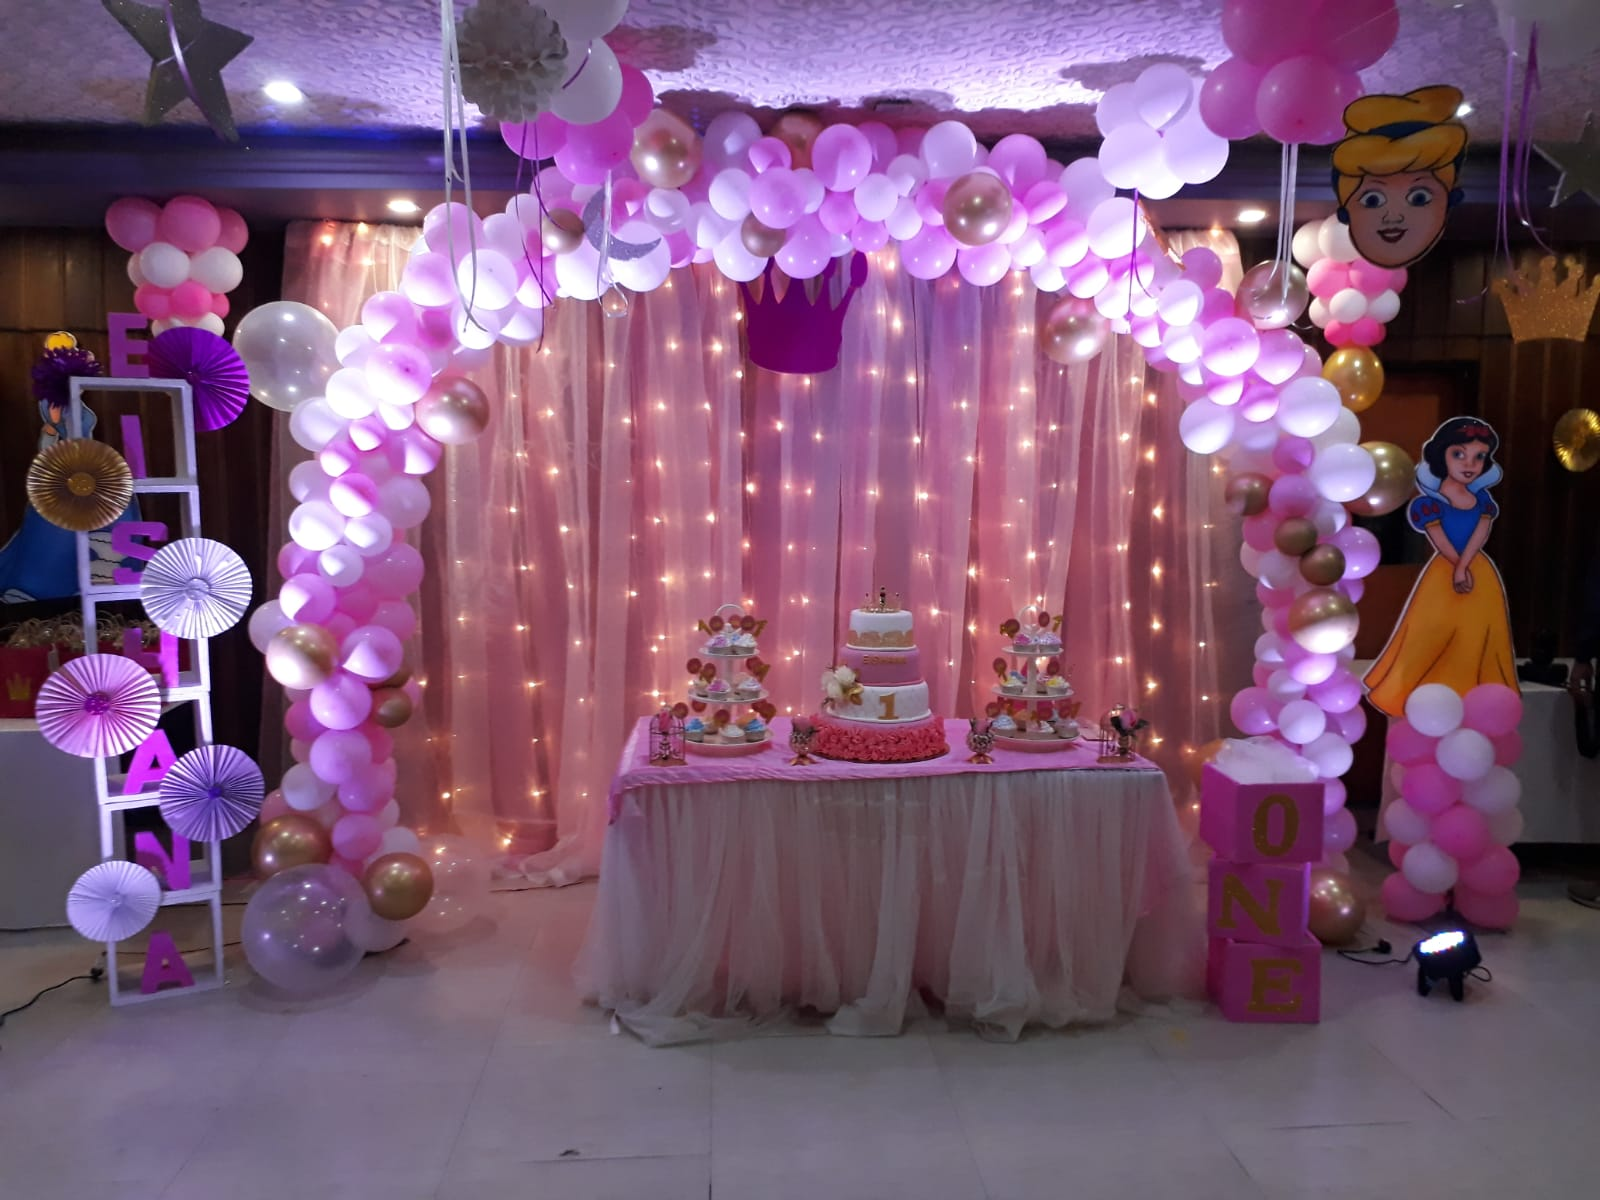 Birthday Party Organizer Delhi is at the leading edge of organizing birthday for all age groups